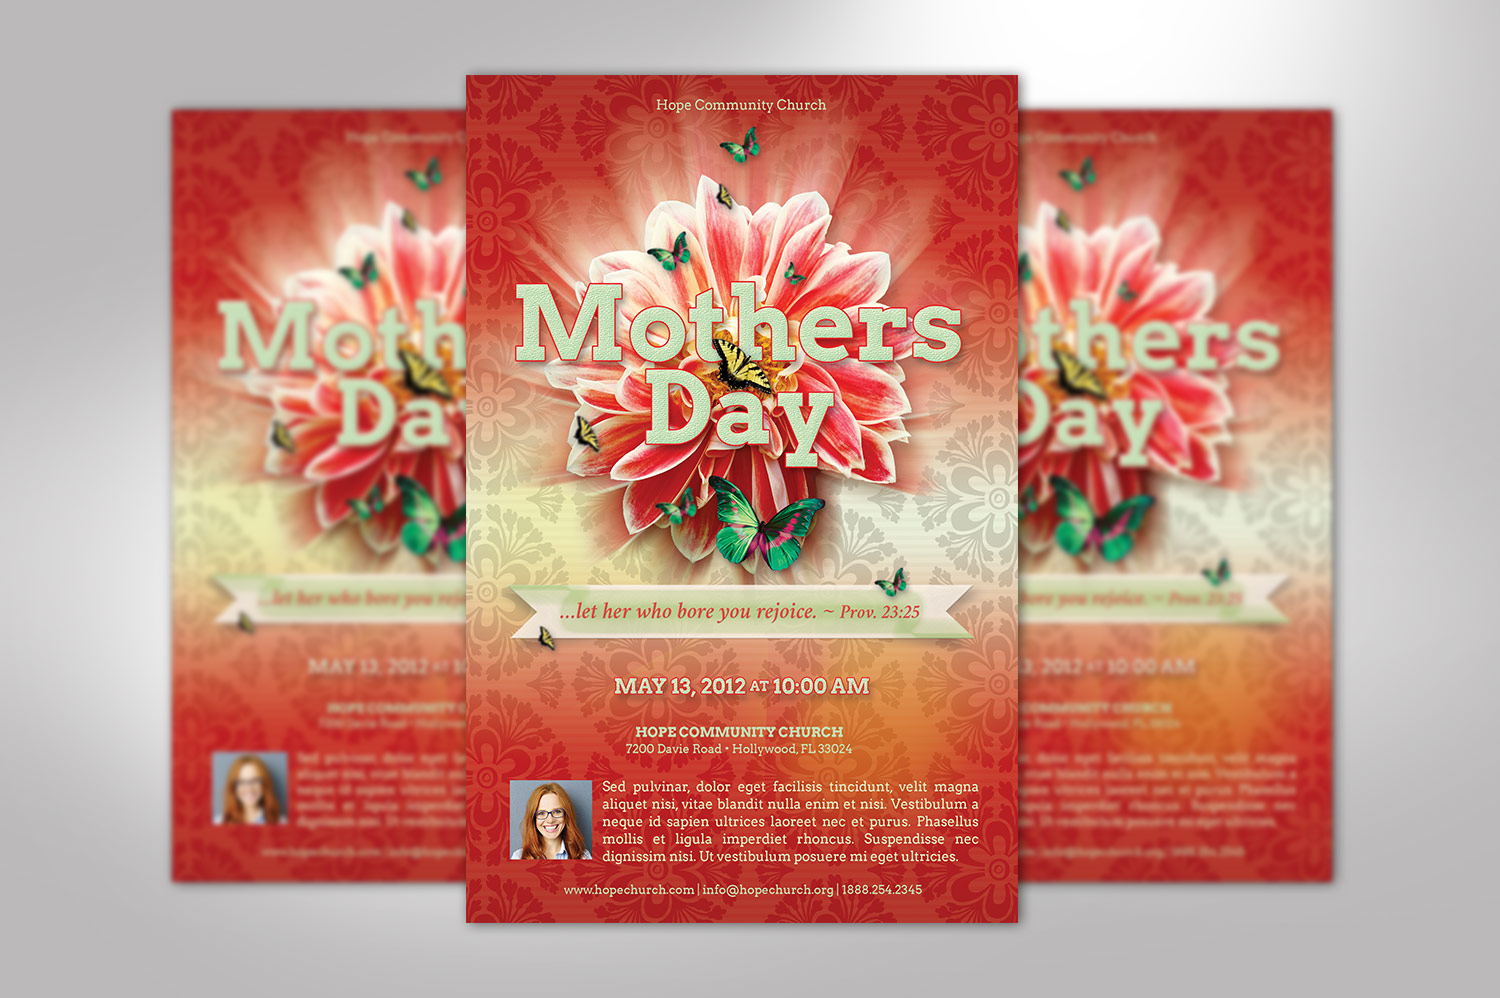 Mothers Day Flyer Photoshop Template example image 3